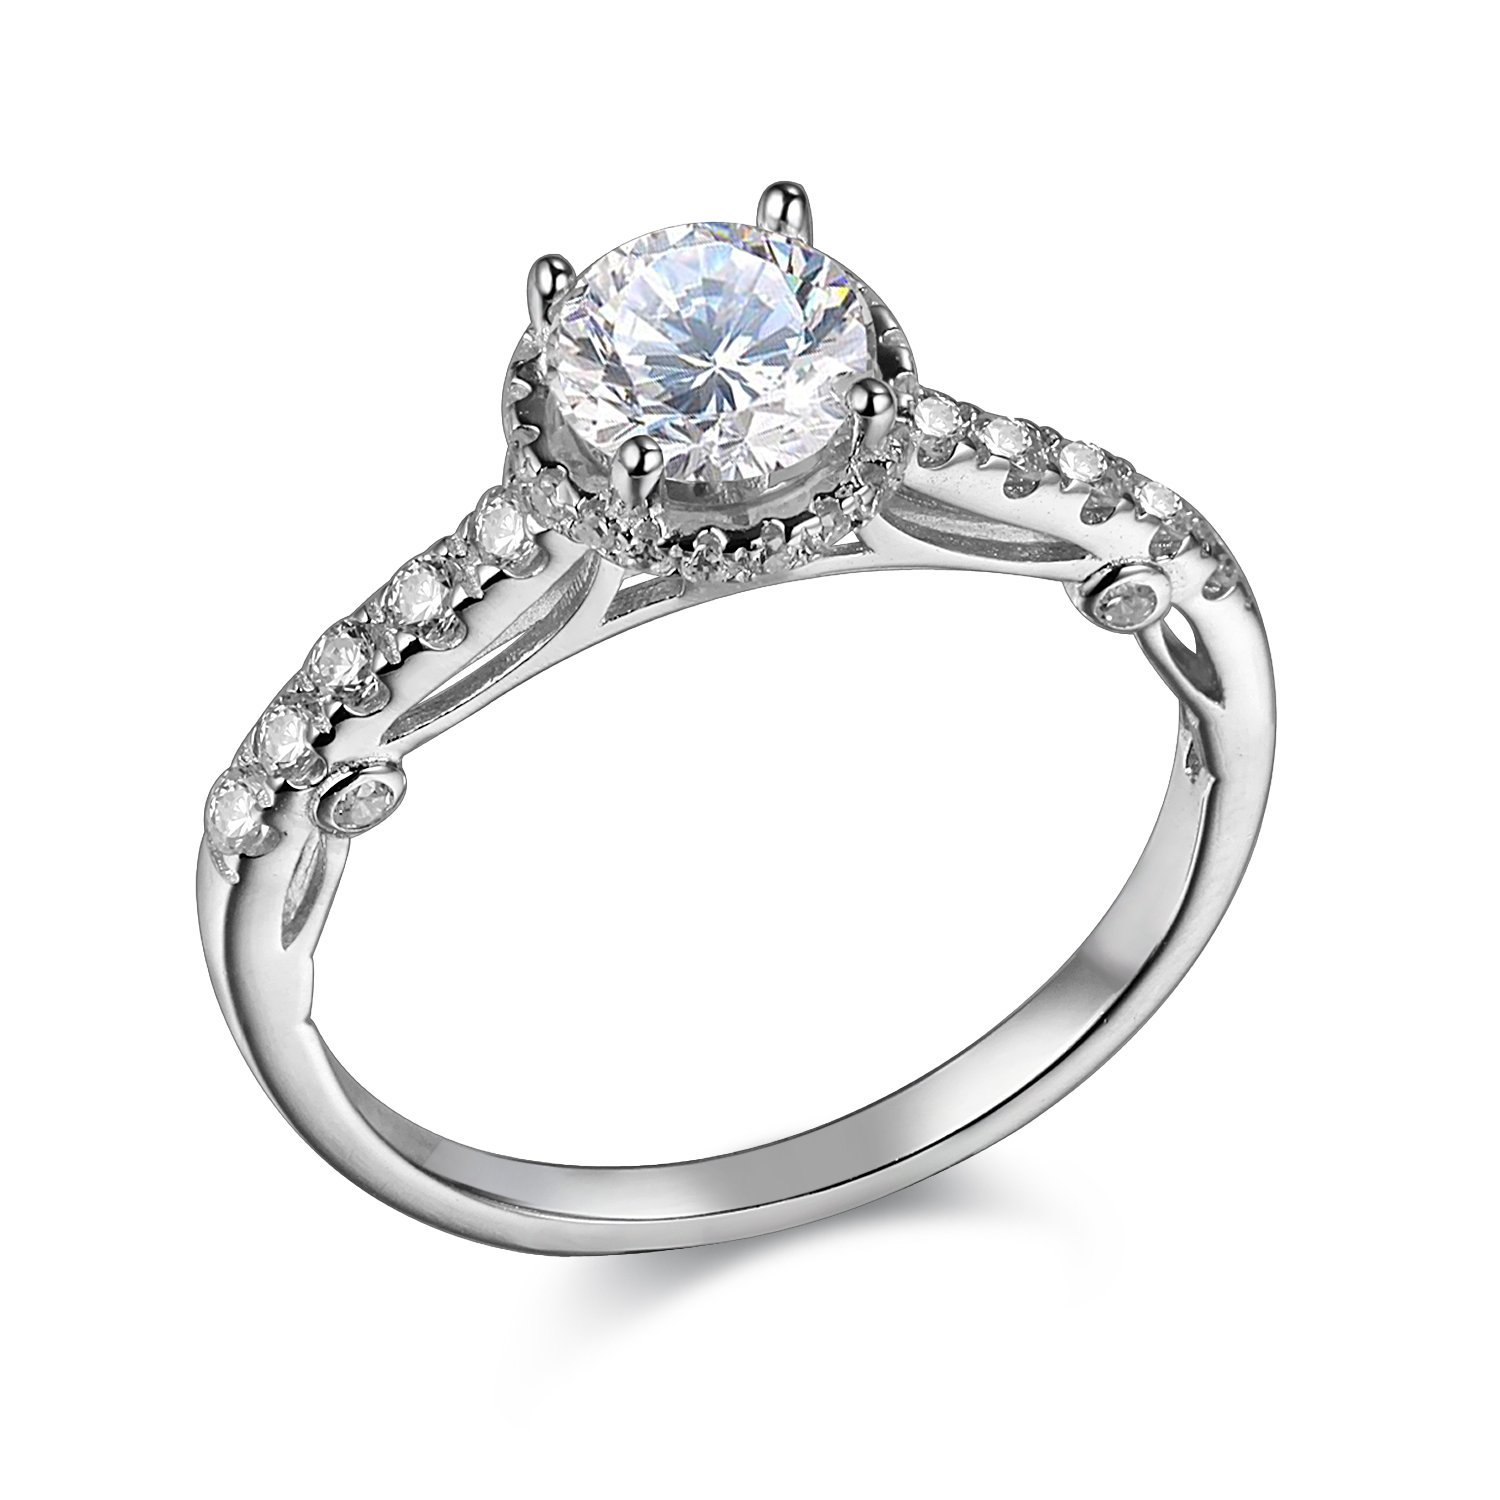 Newshe 1.2ct Round Cut Halo White Cz 925 Sterling Silver Wedding Engagement Ring Promise Size 10